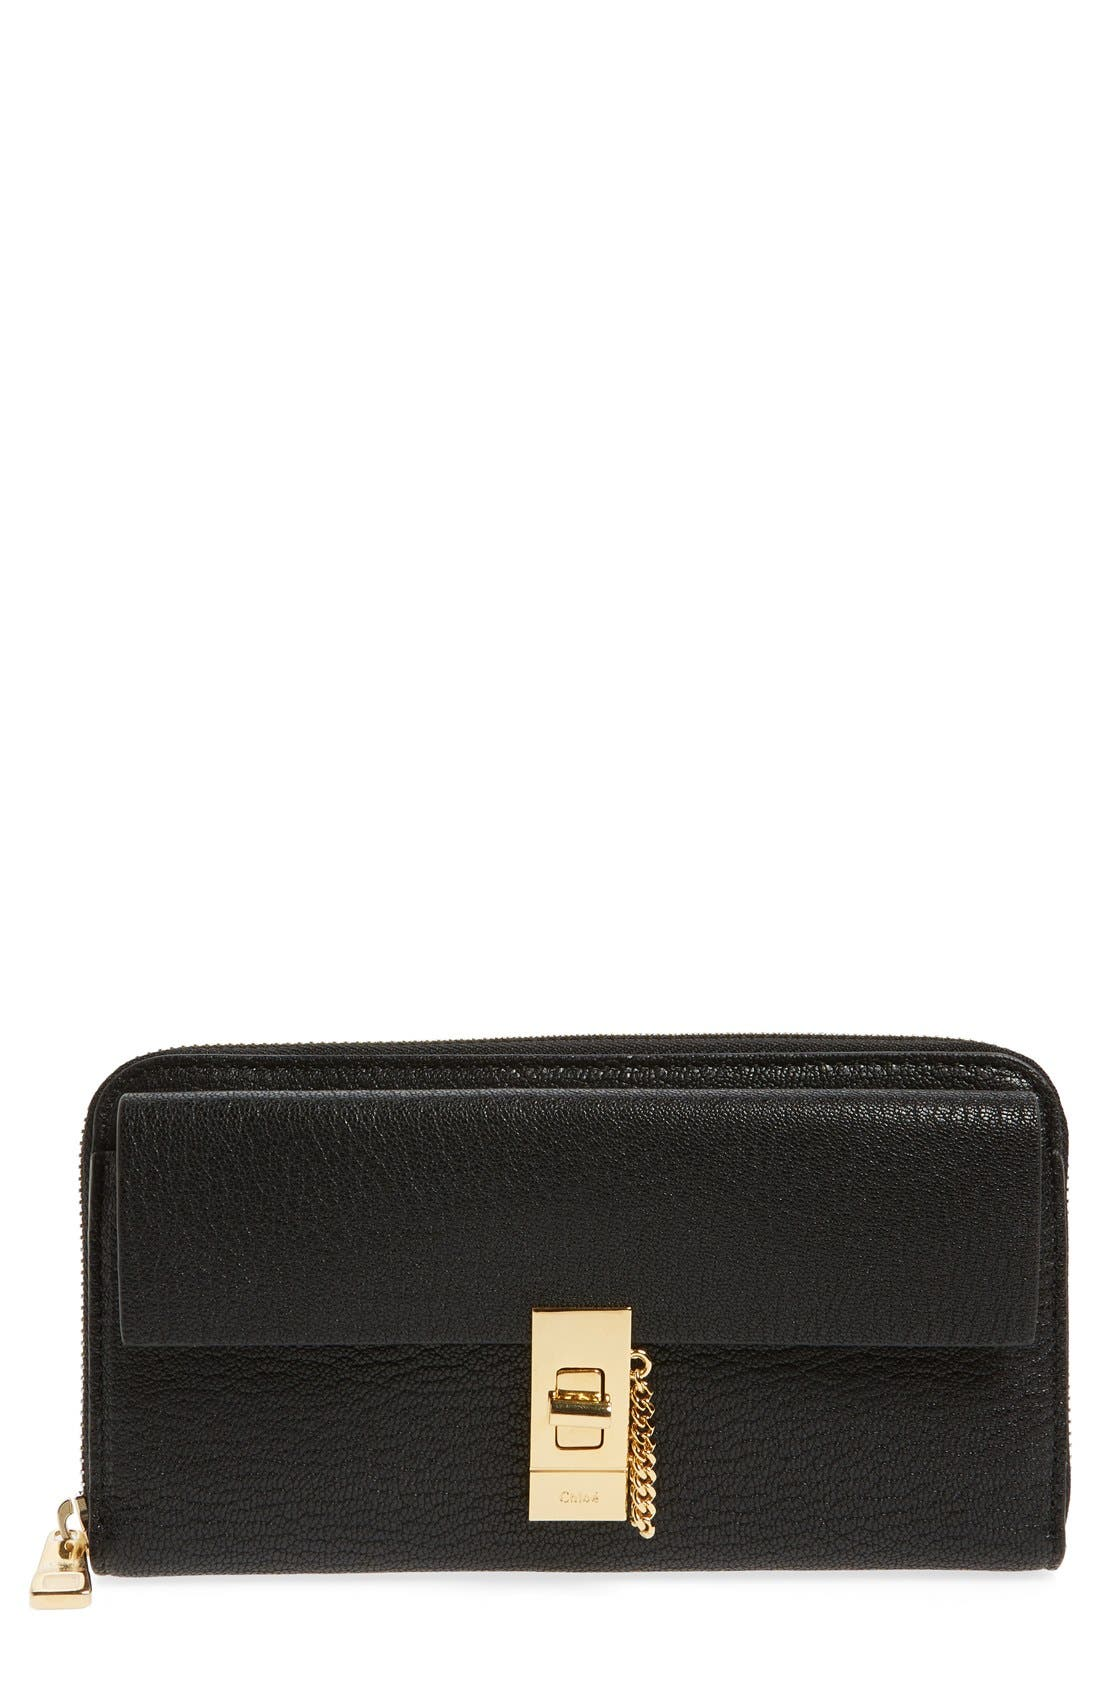 Alternate Image 1 Selected - Chloé 'Drew' Calfskin Leather Zip Around Wallet